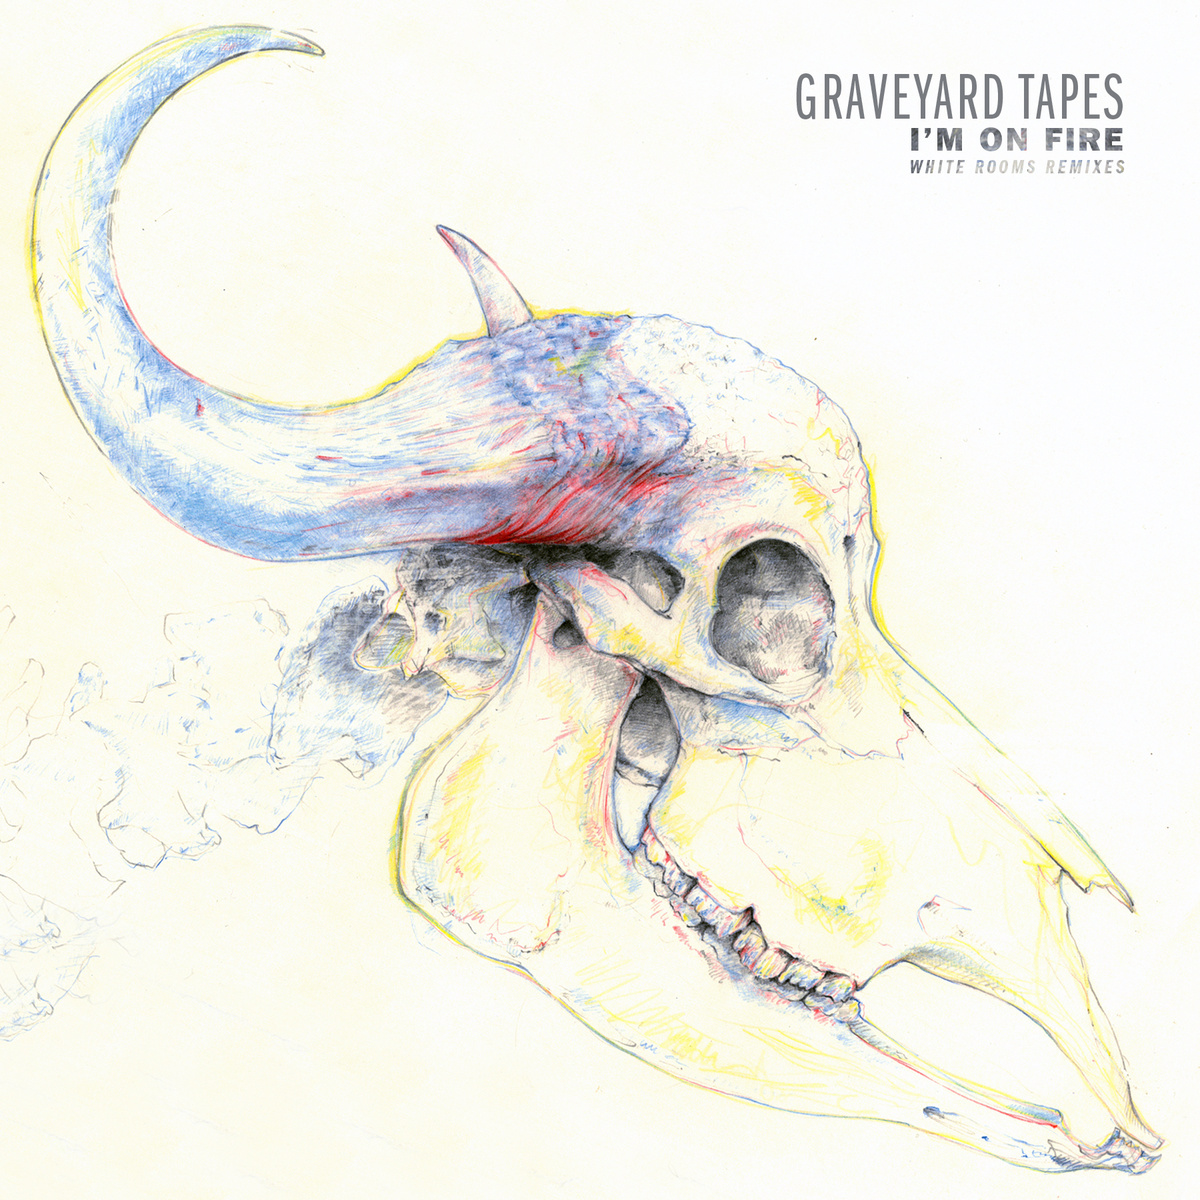 Graveyard Tapes